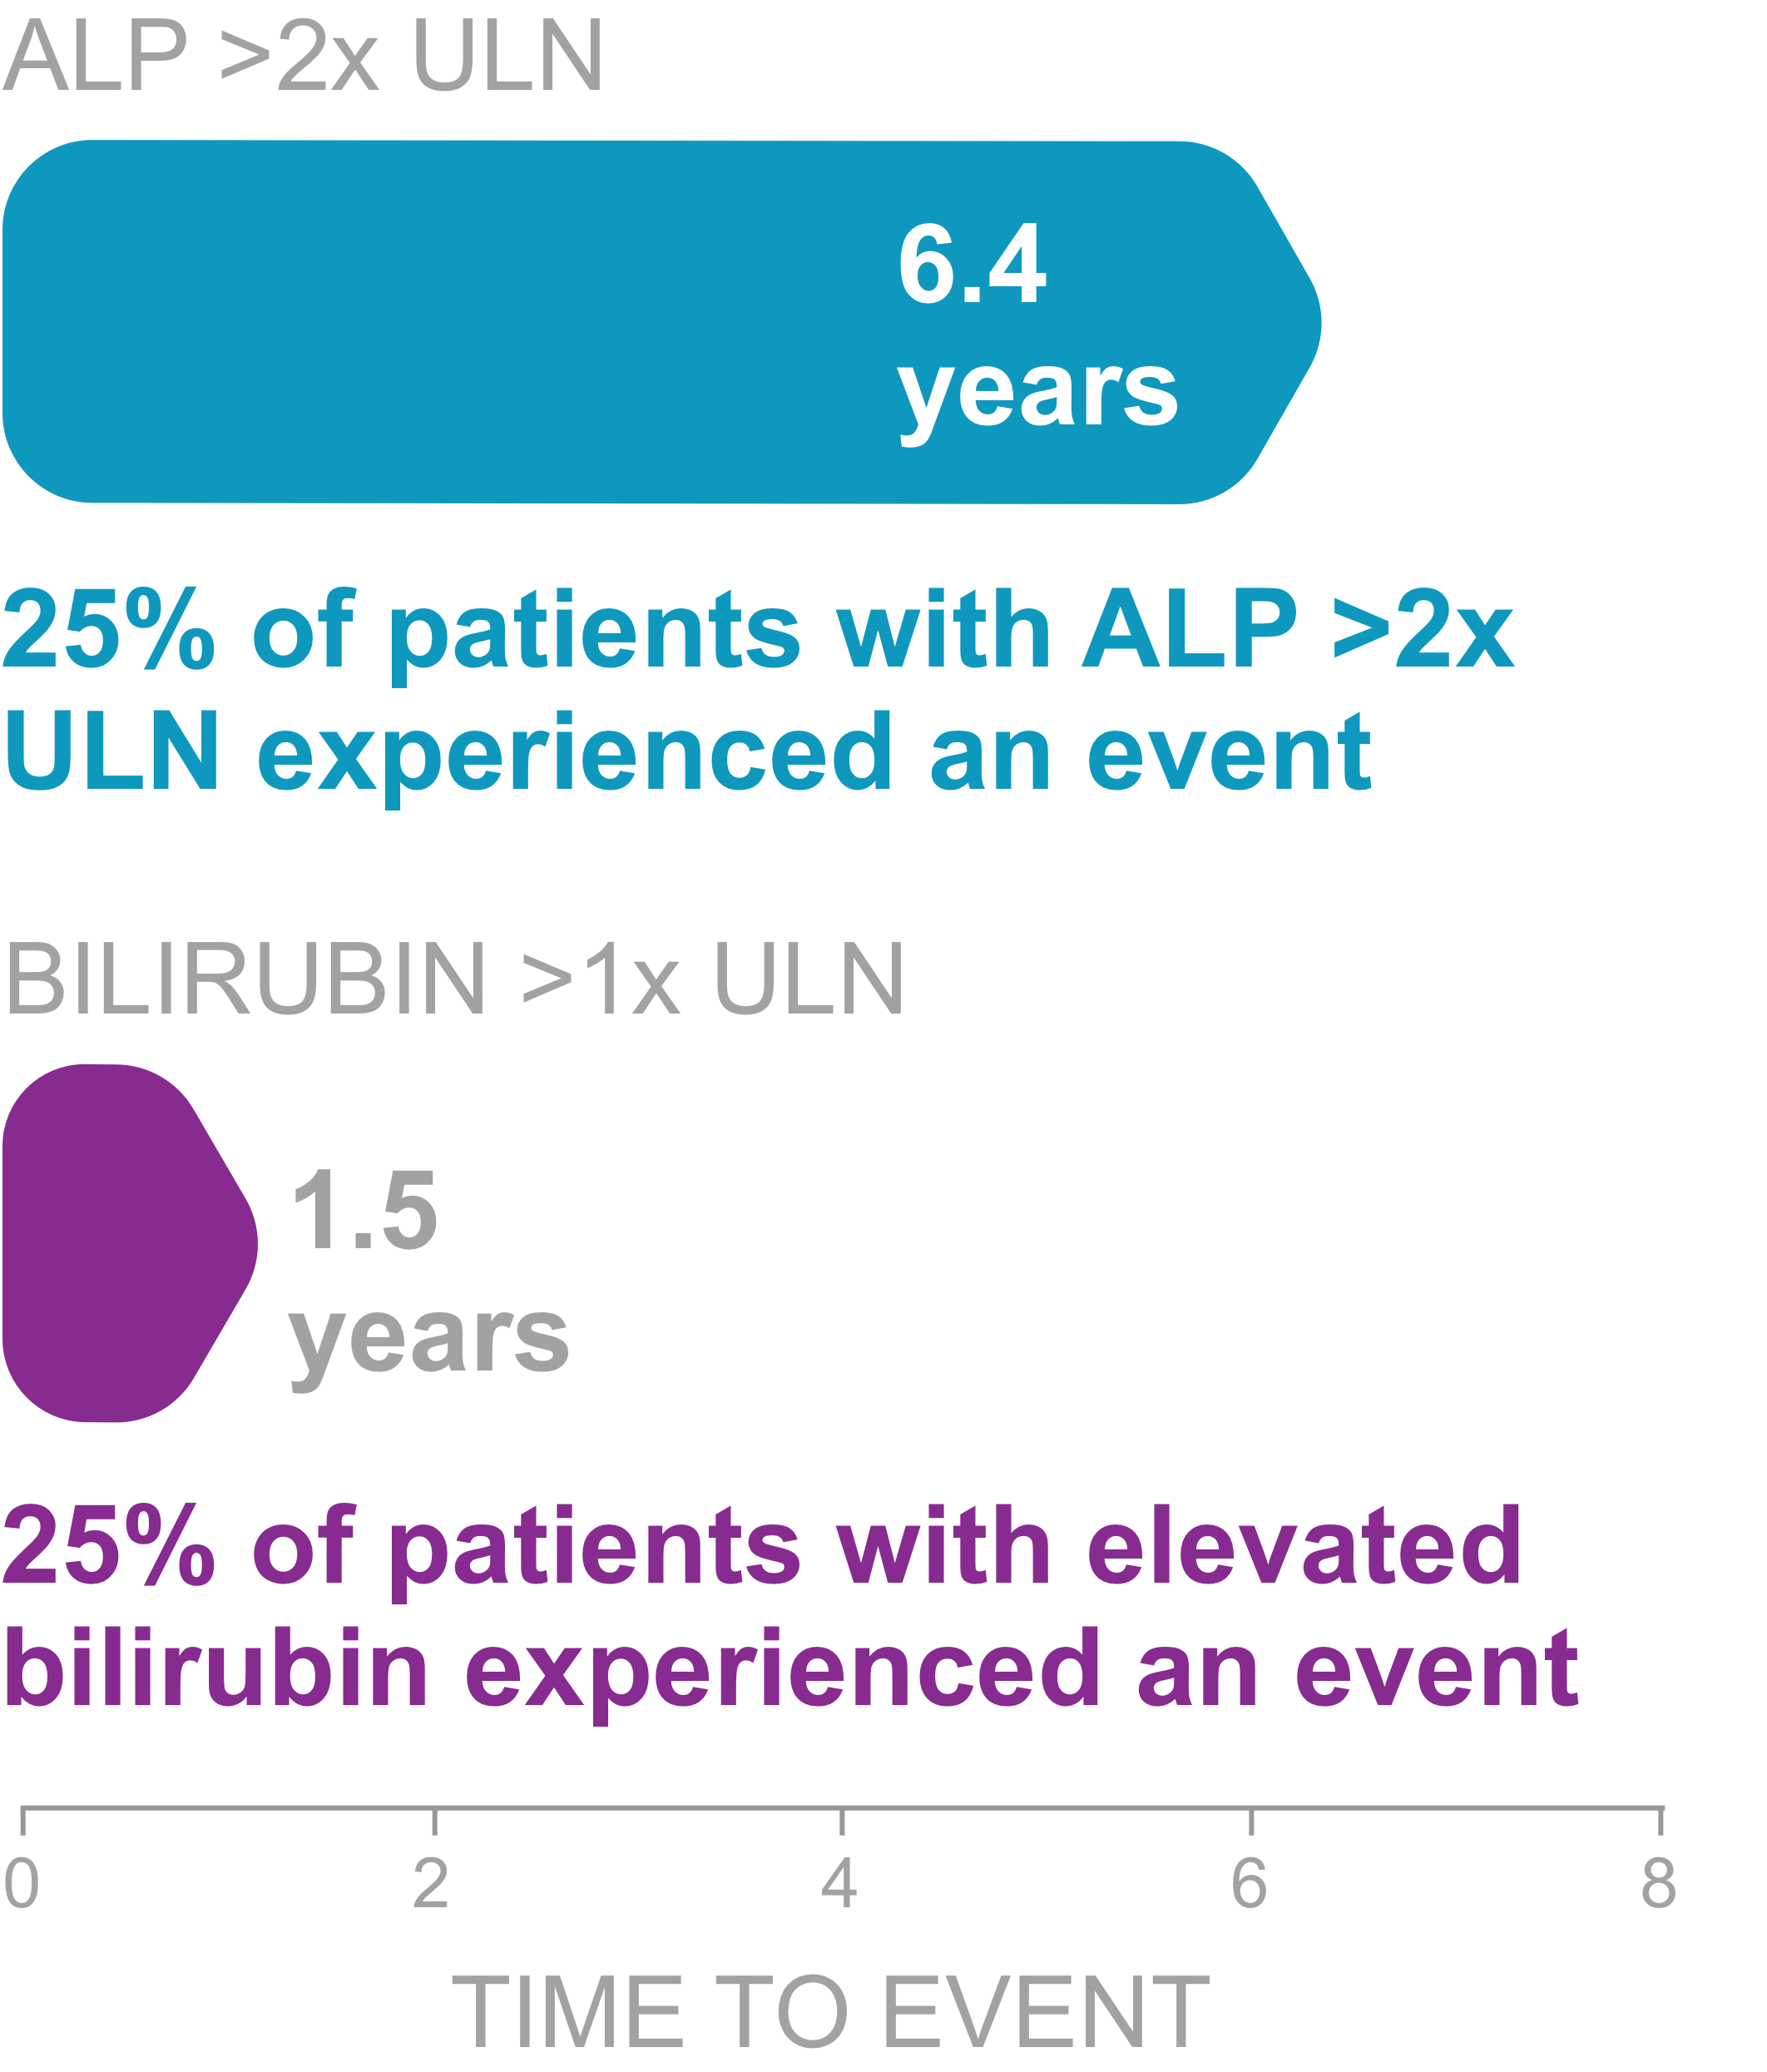 Chart showing impact of elevated ALP and bilirubin on liver transplant or death